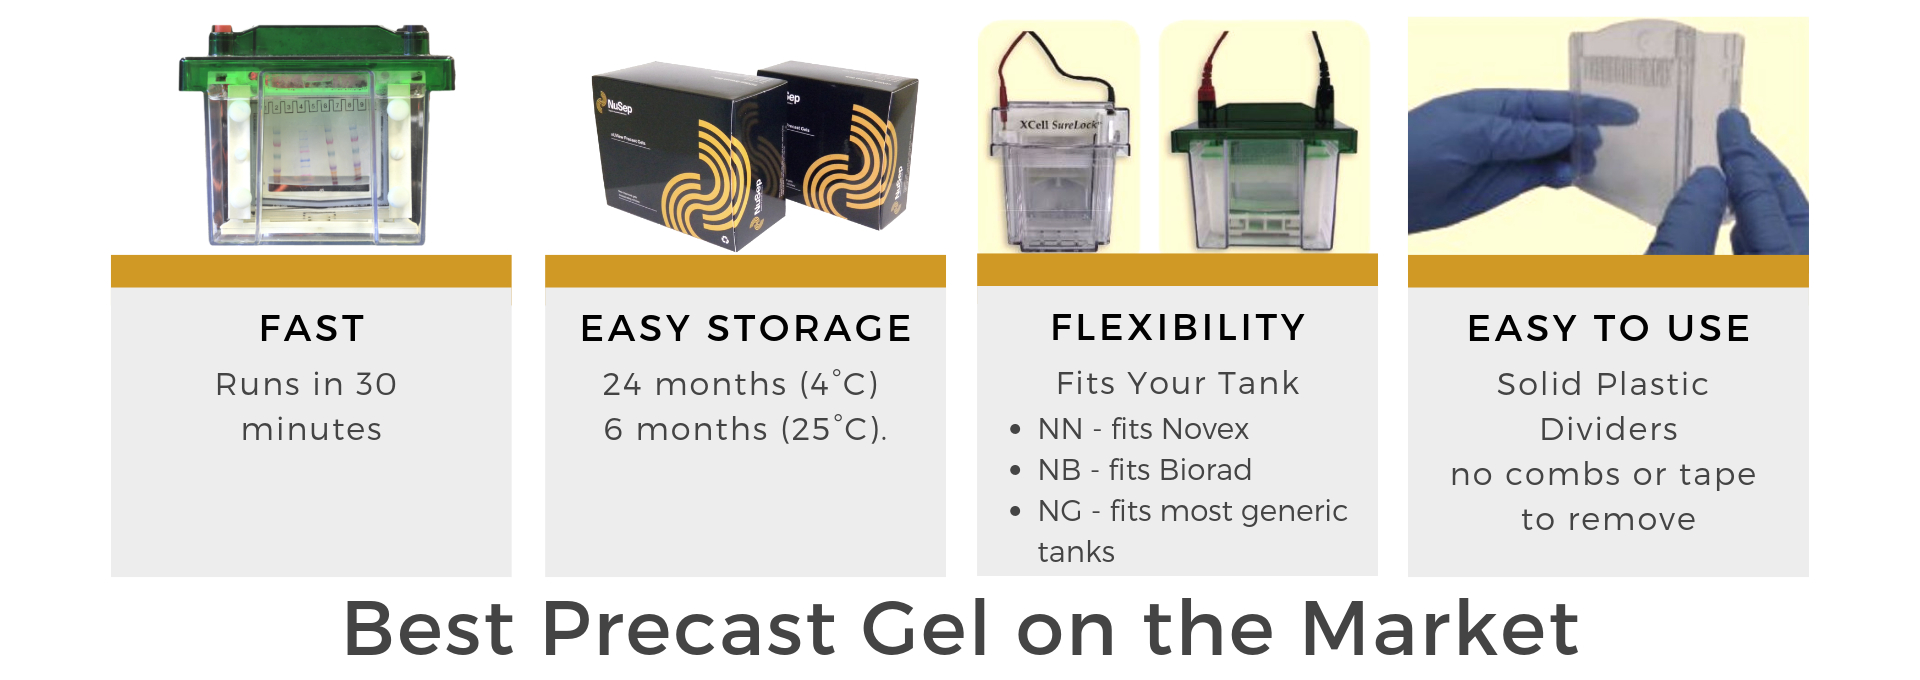 The Best Precast Gel on the Market - fast, long storage, fits your tank, and easy to use